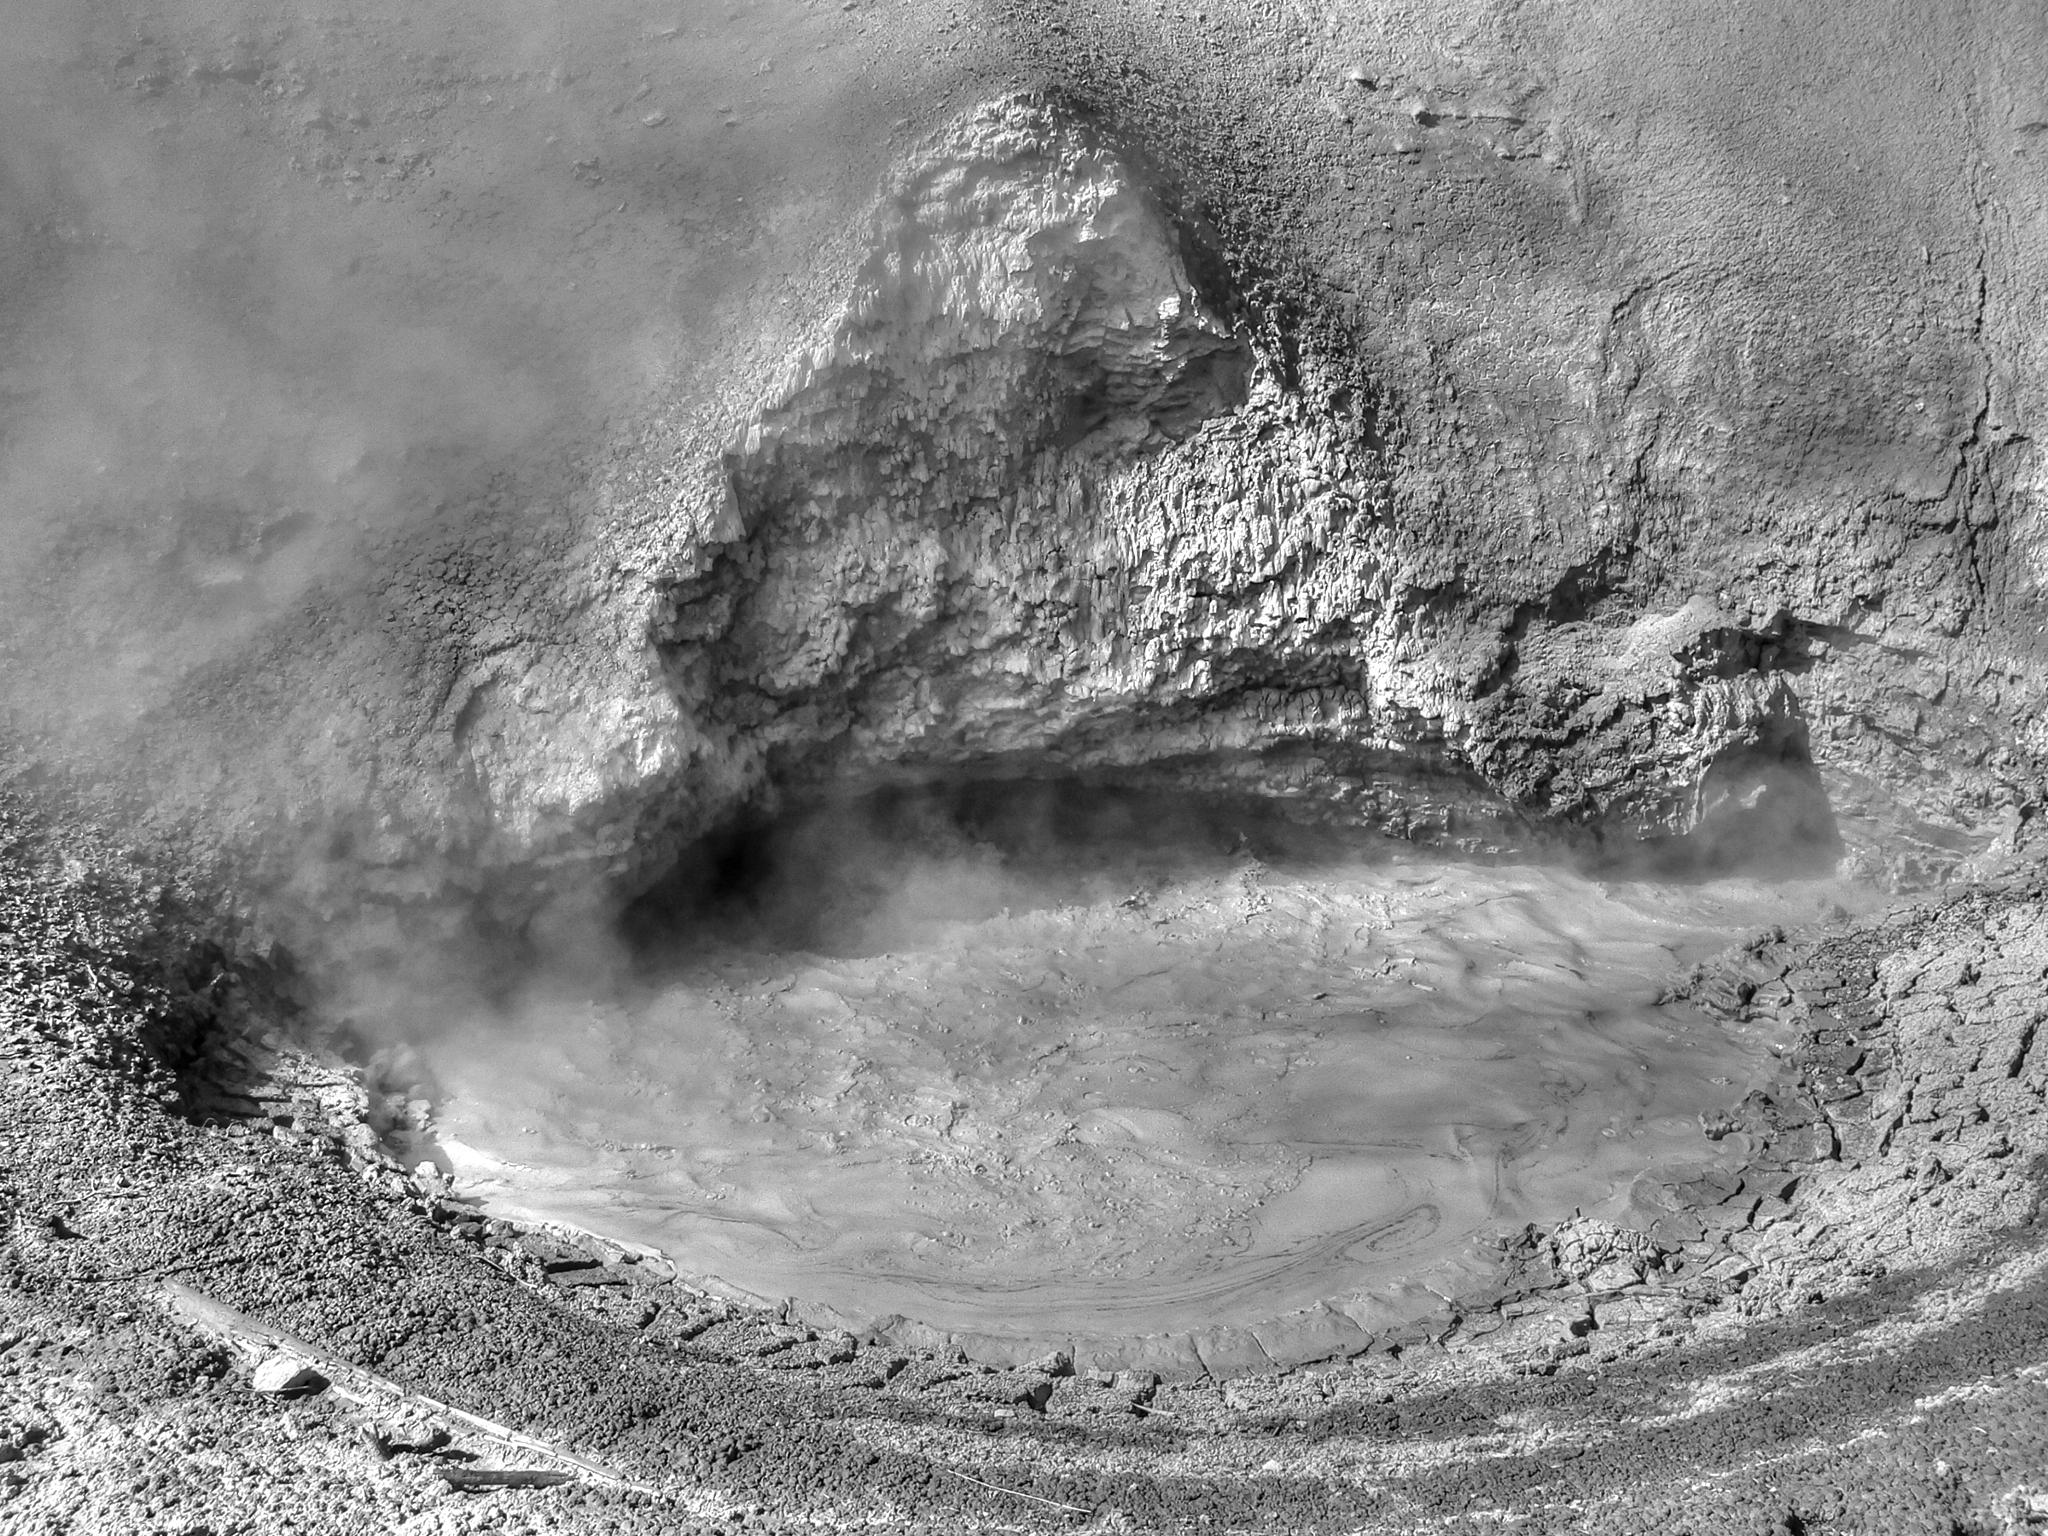 Mud Volcano by Barry Houser